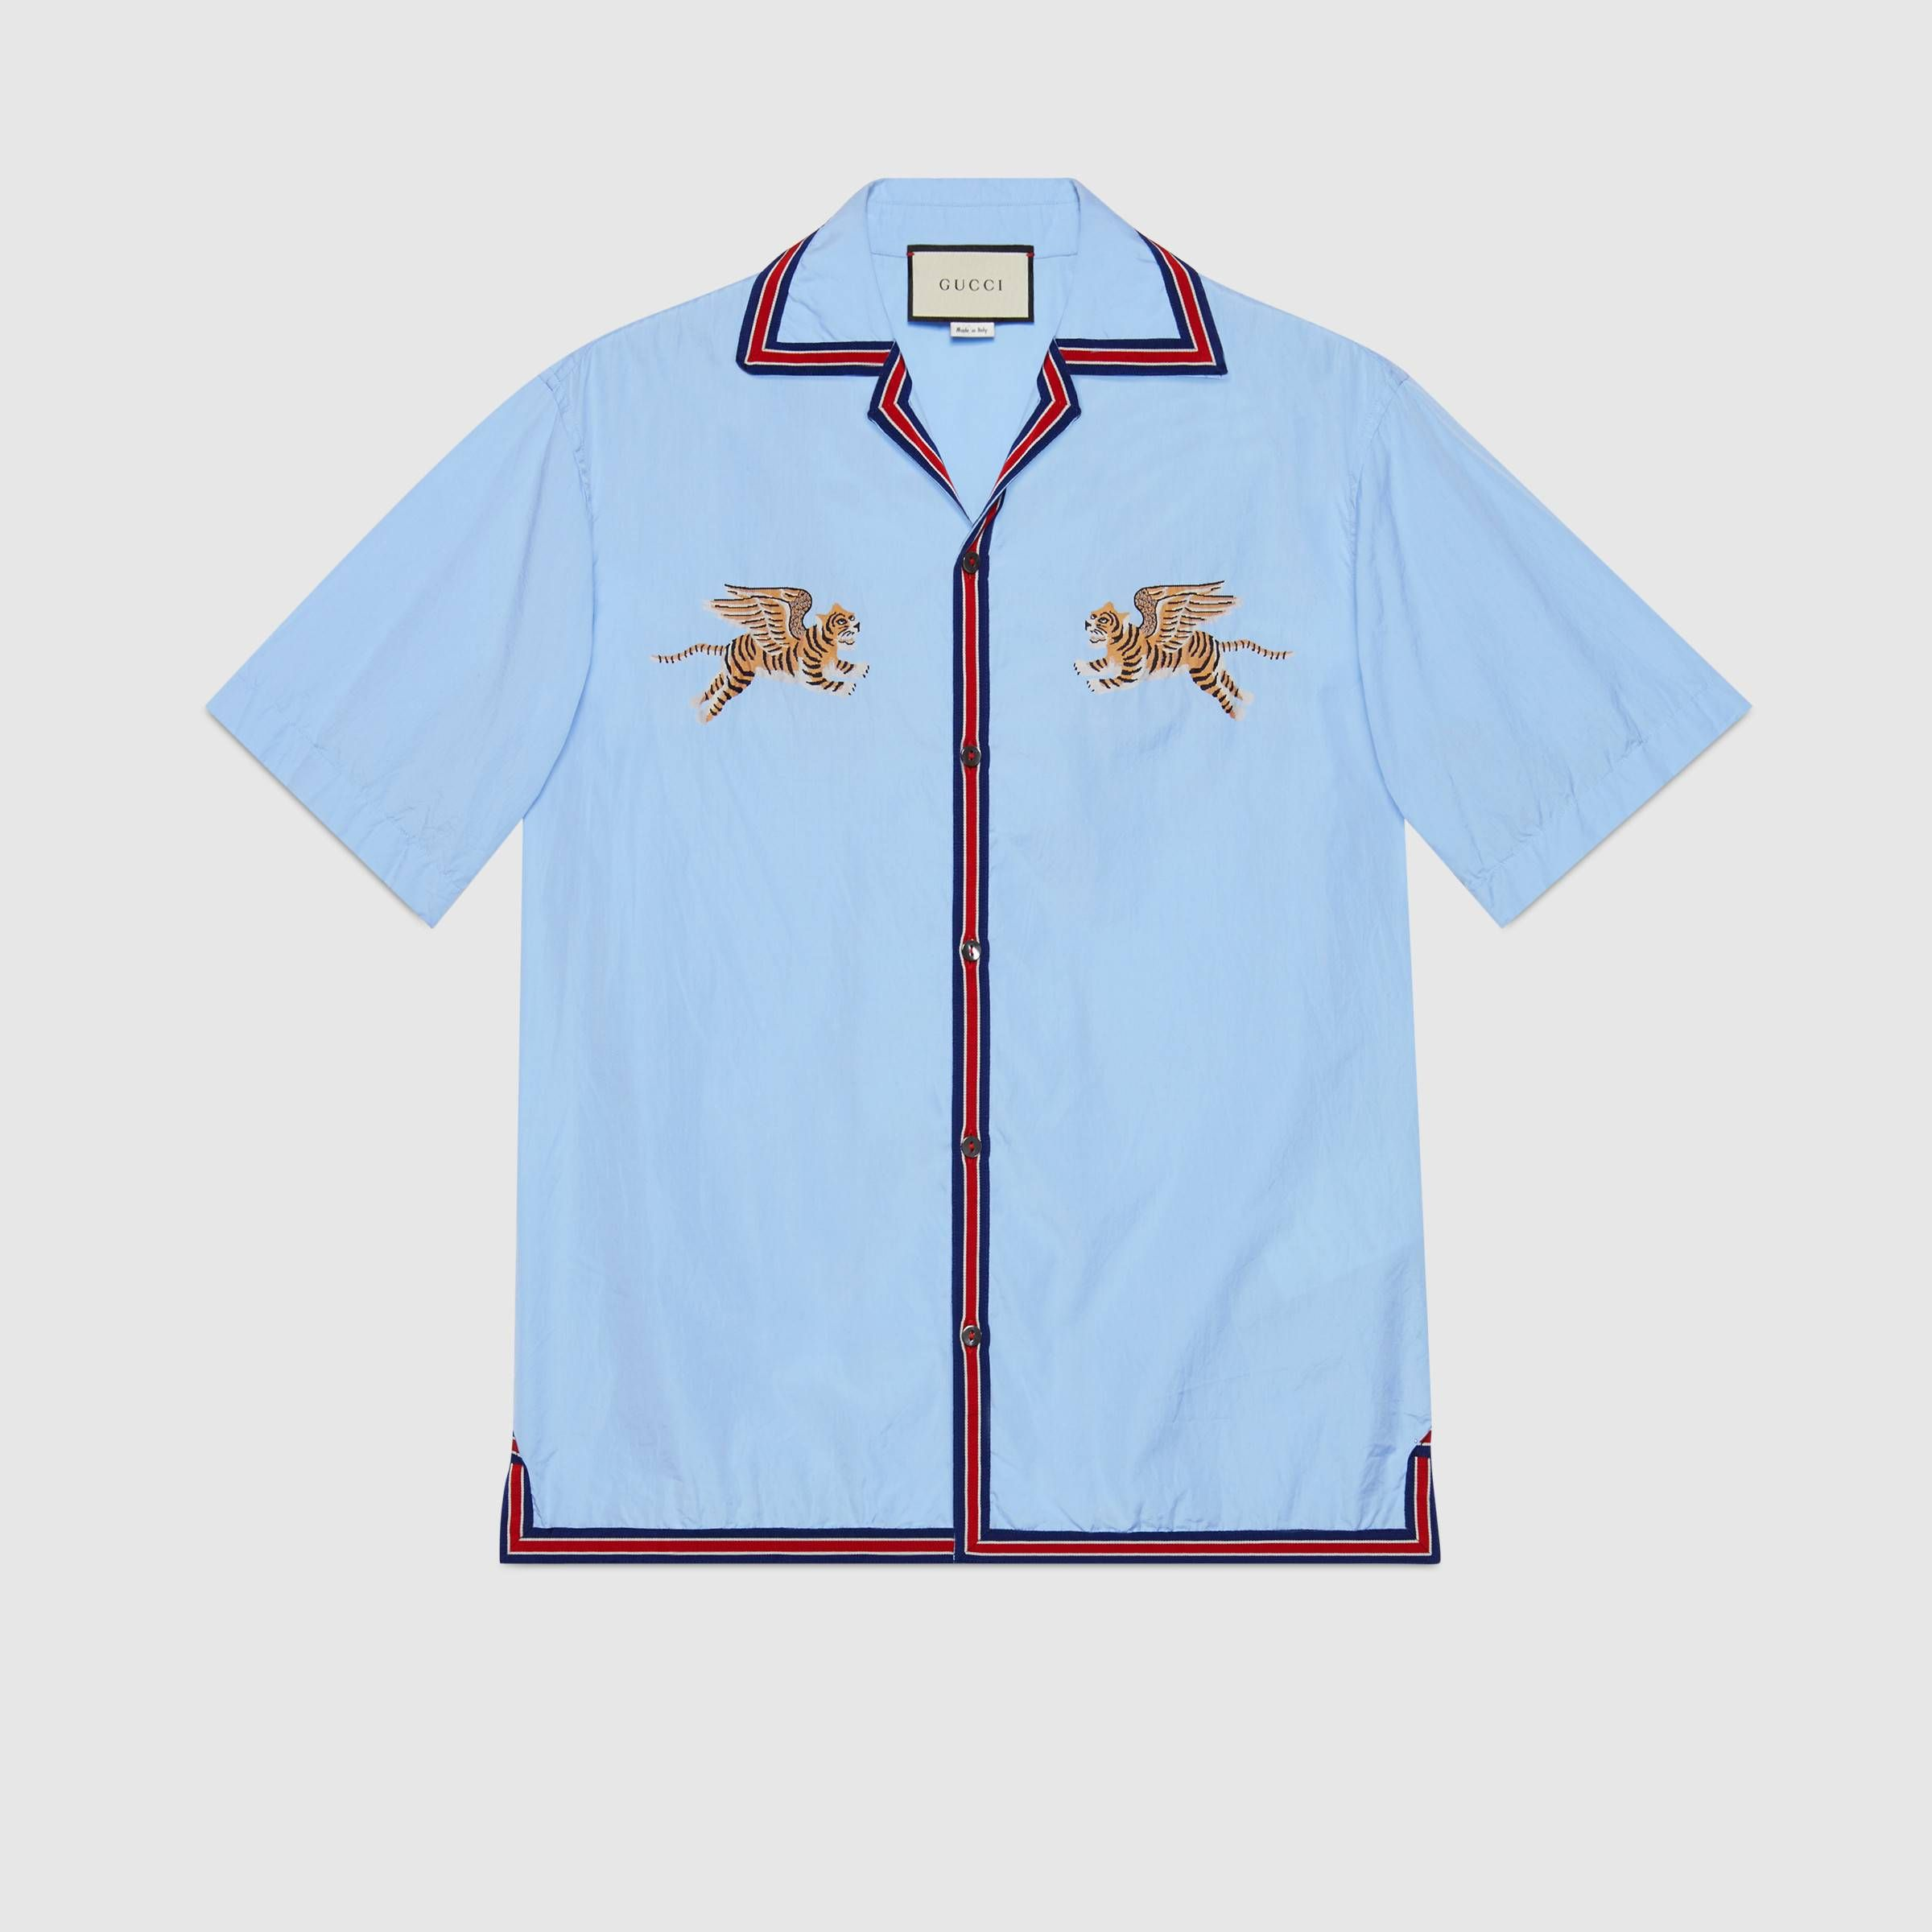 3014f52a0c9c Tiger fil coupé bowling shirt in Light blue cotton with flying tigers fil  coupé